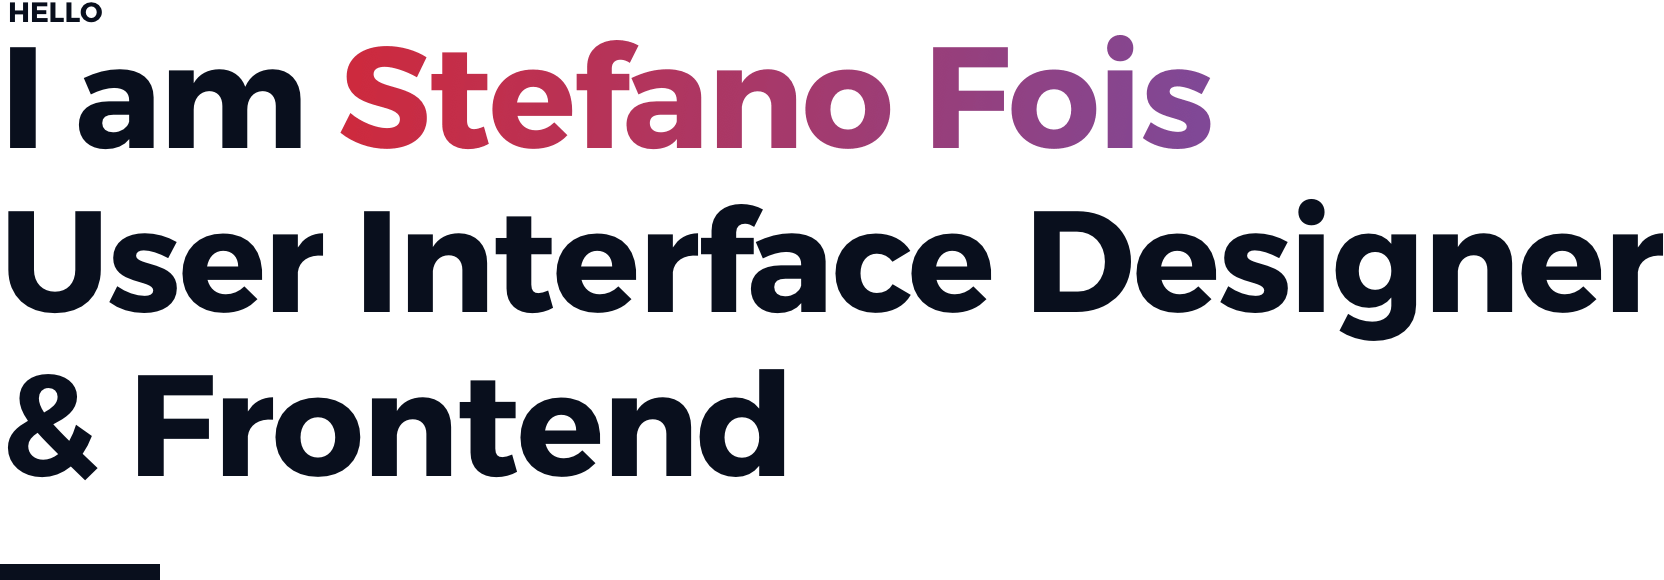 I am Stefano Fois User Interface Designer and Frontend